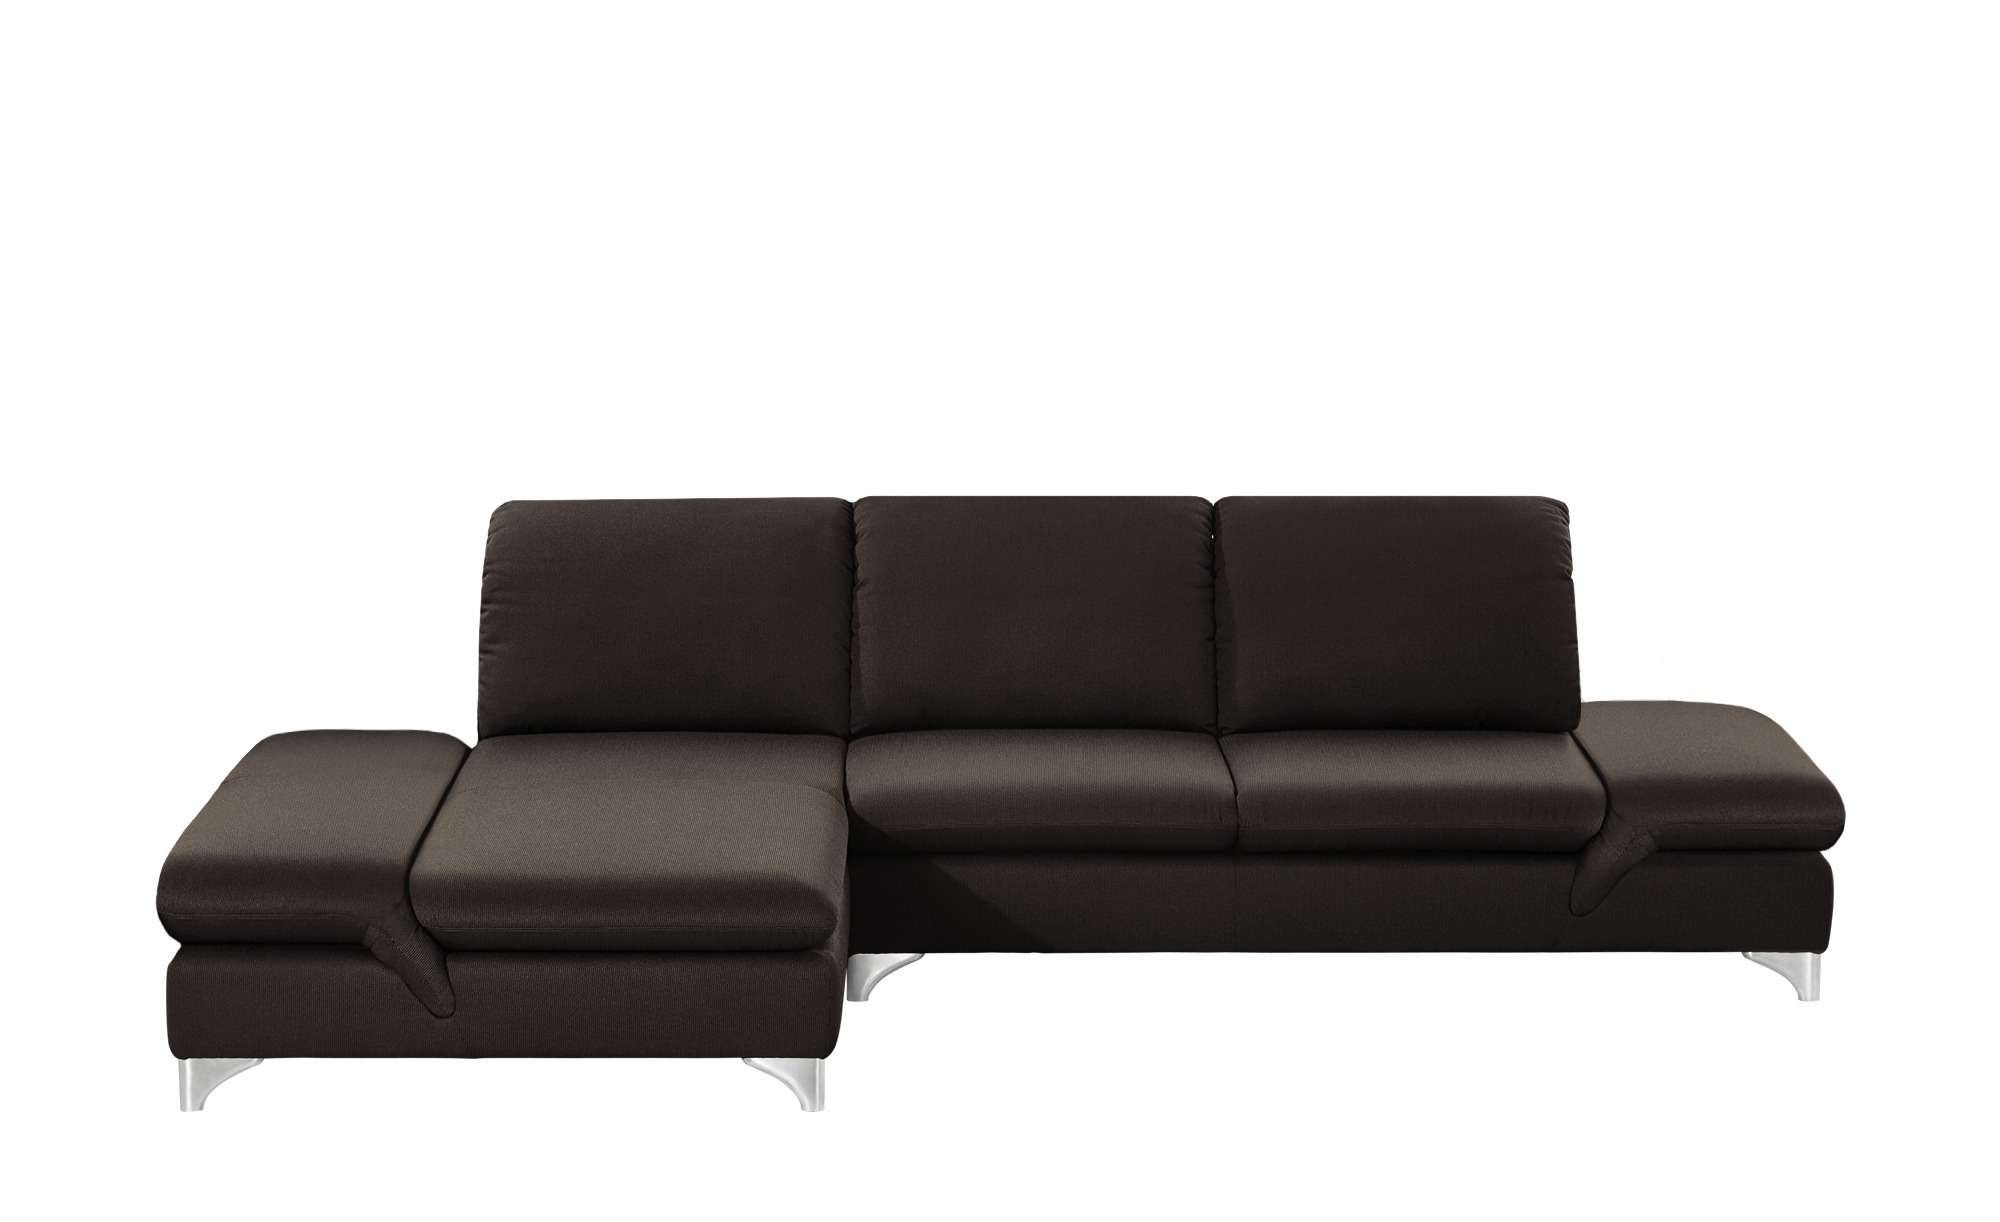 Simplistic Sofa Mit Holzbeinen Decor Home Decor Sectional Couch